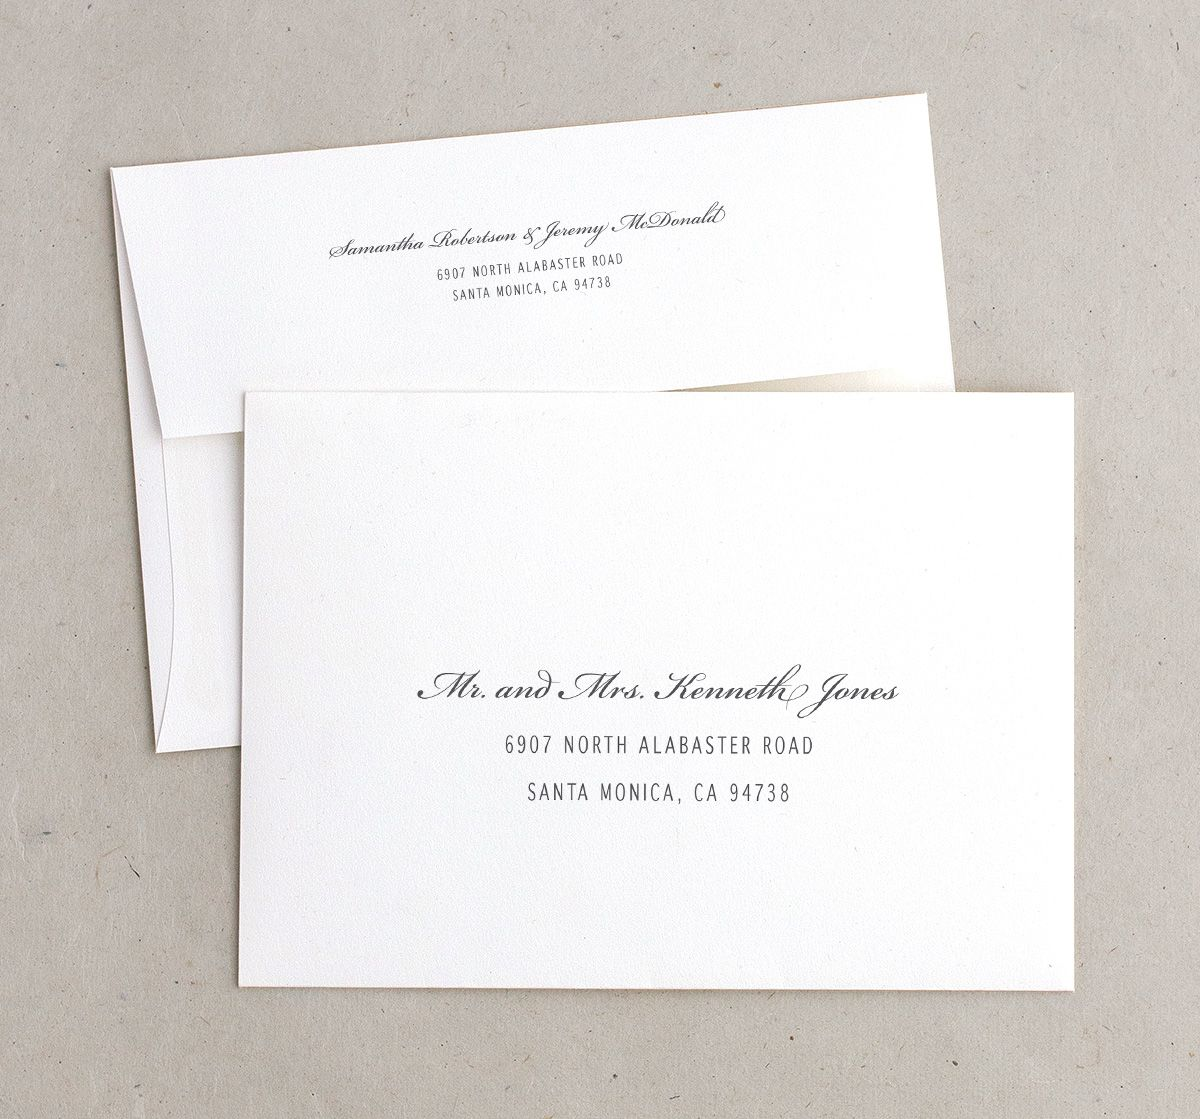 Vintage Boarding Pass wedding invitation envelopes